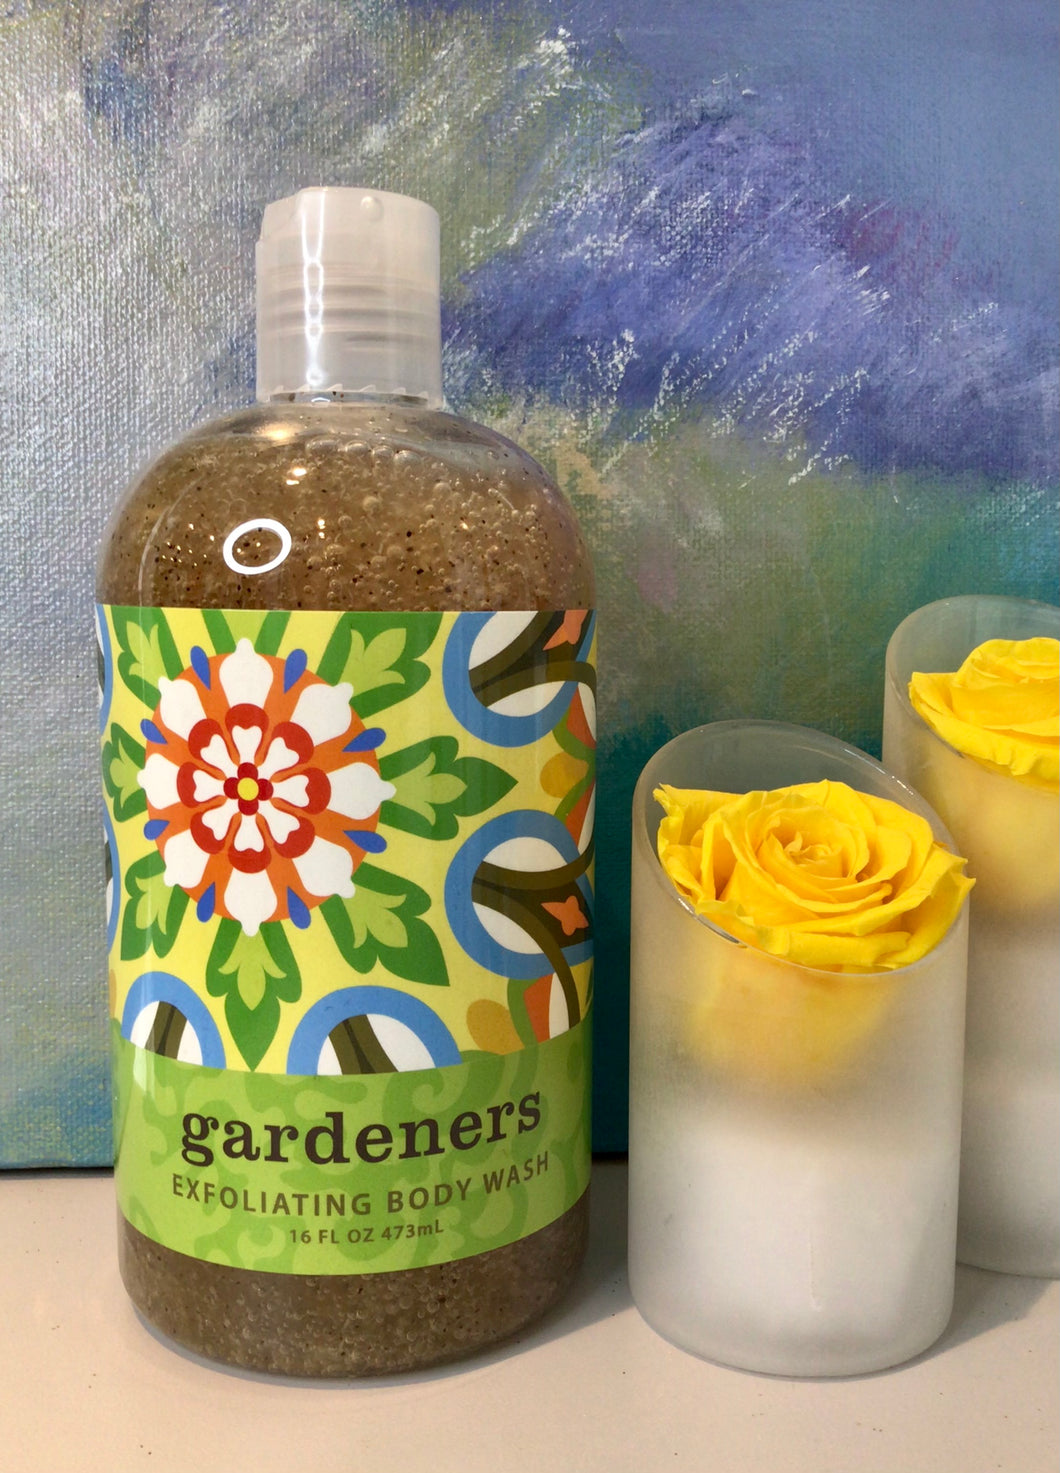 Greenwich Gardeners Exfoliating Body Wash